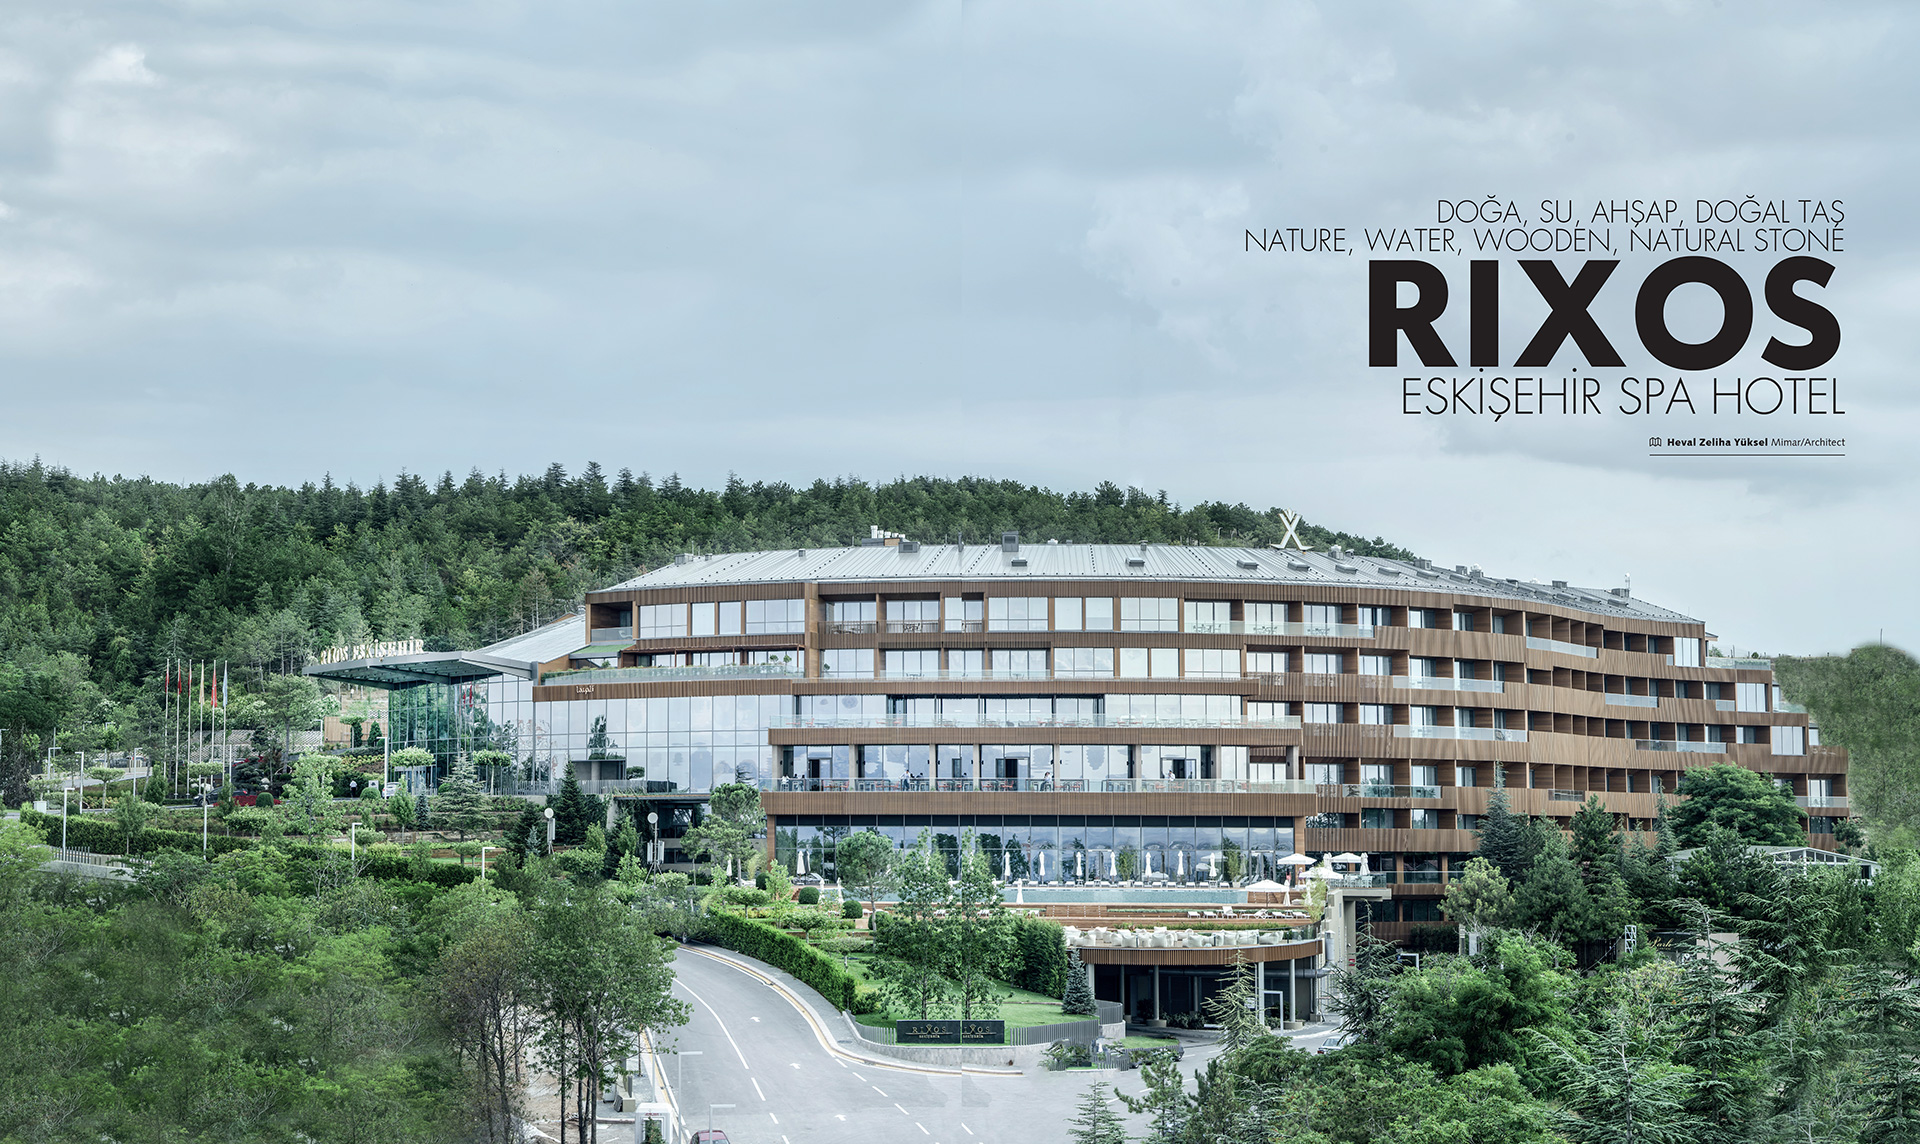 NATURA- Eskisehir Rixos october-november'14